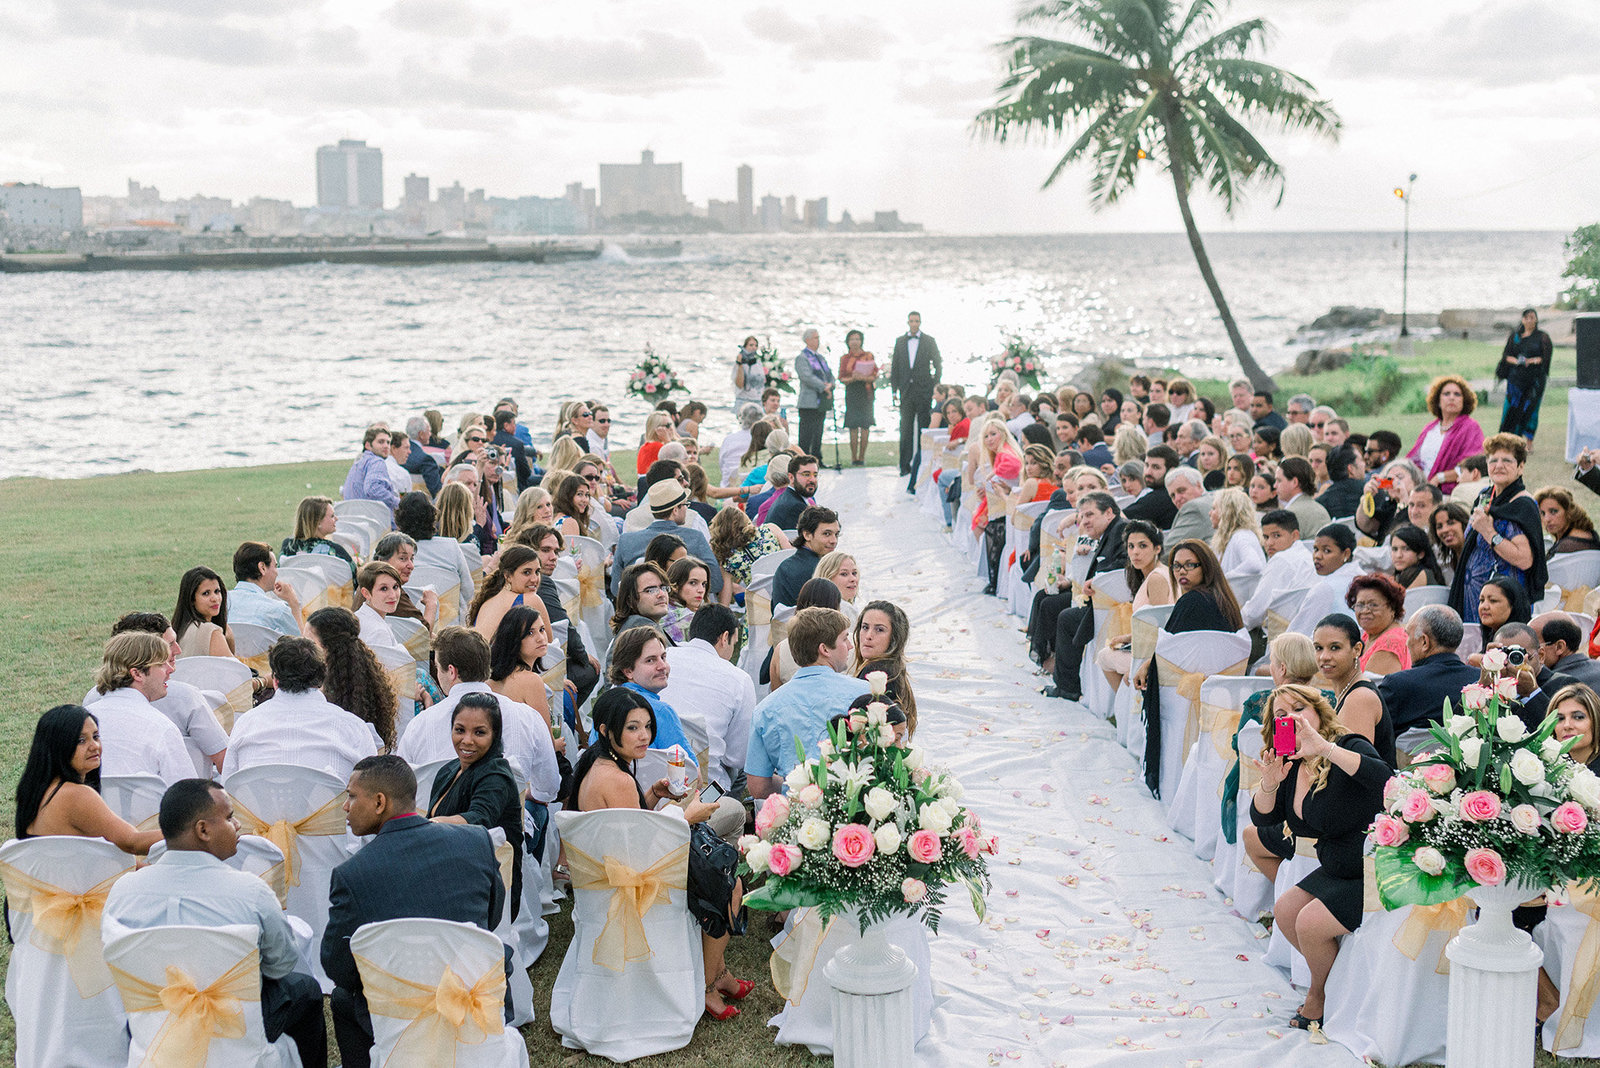 20150328-Pura-Soul-Photo-Cuba-Wedding-43